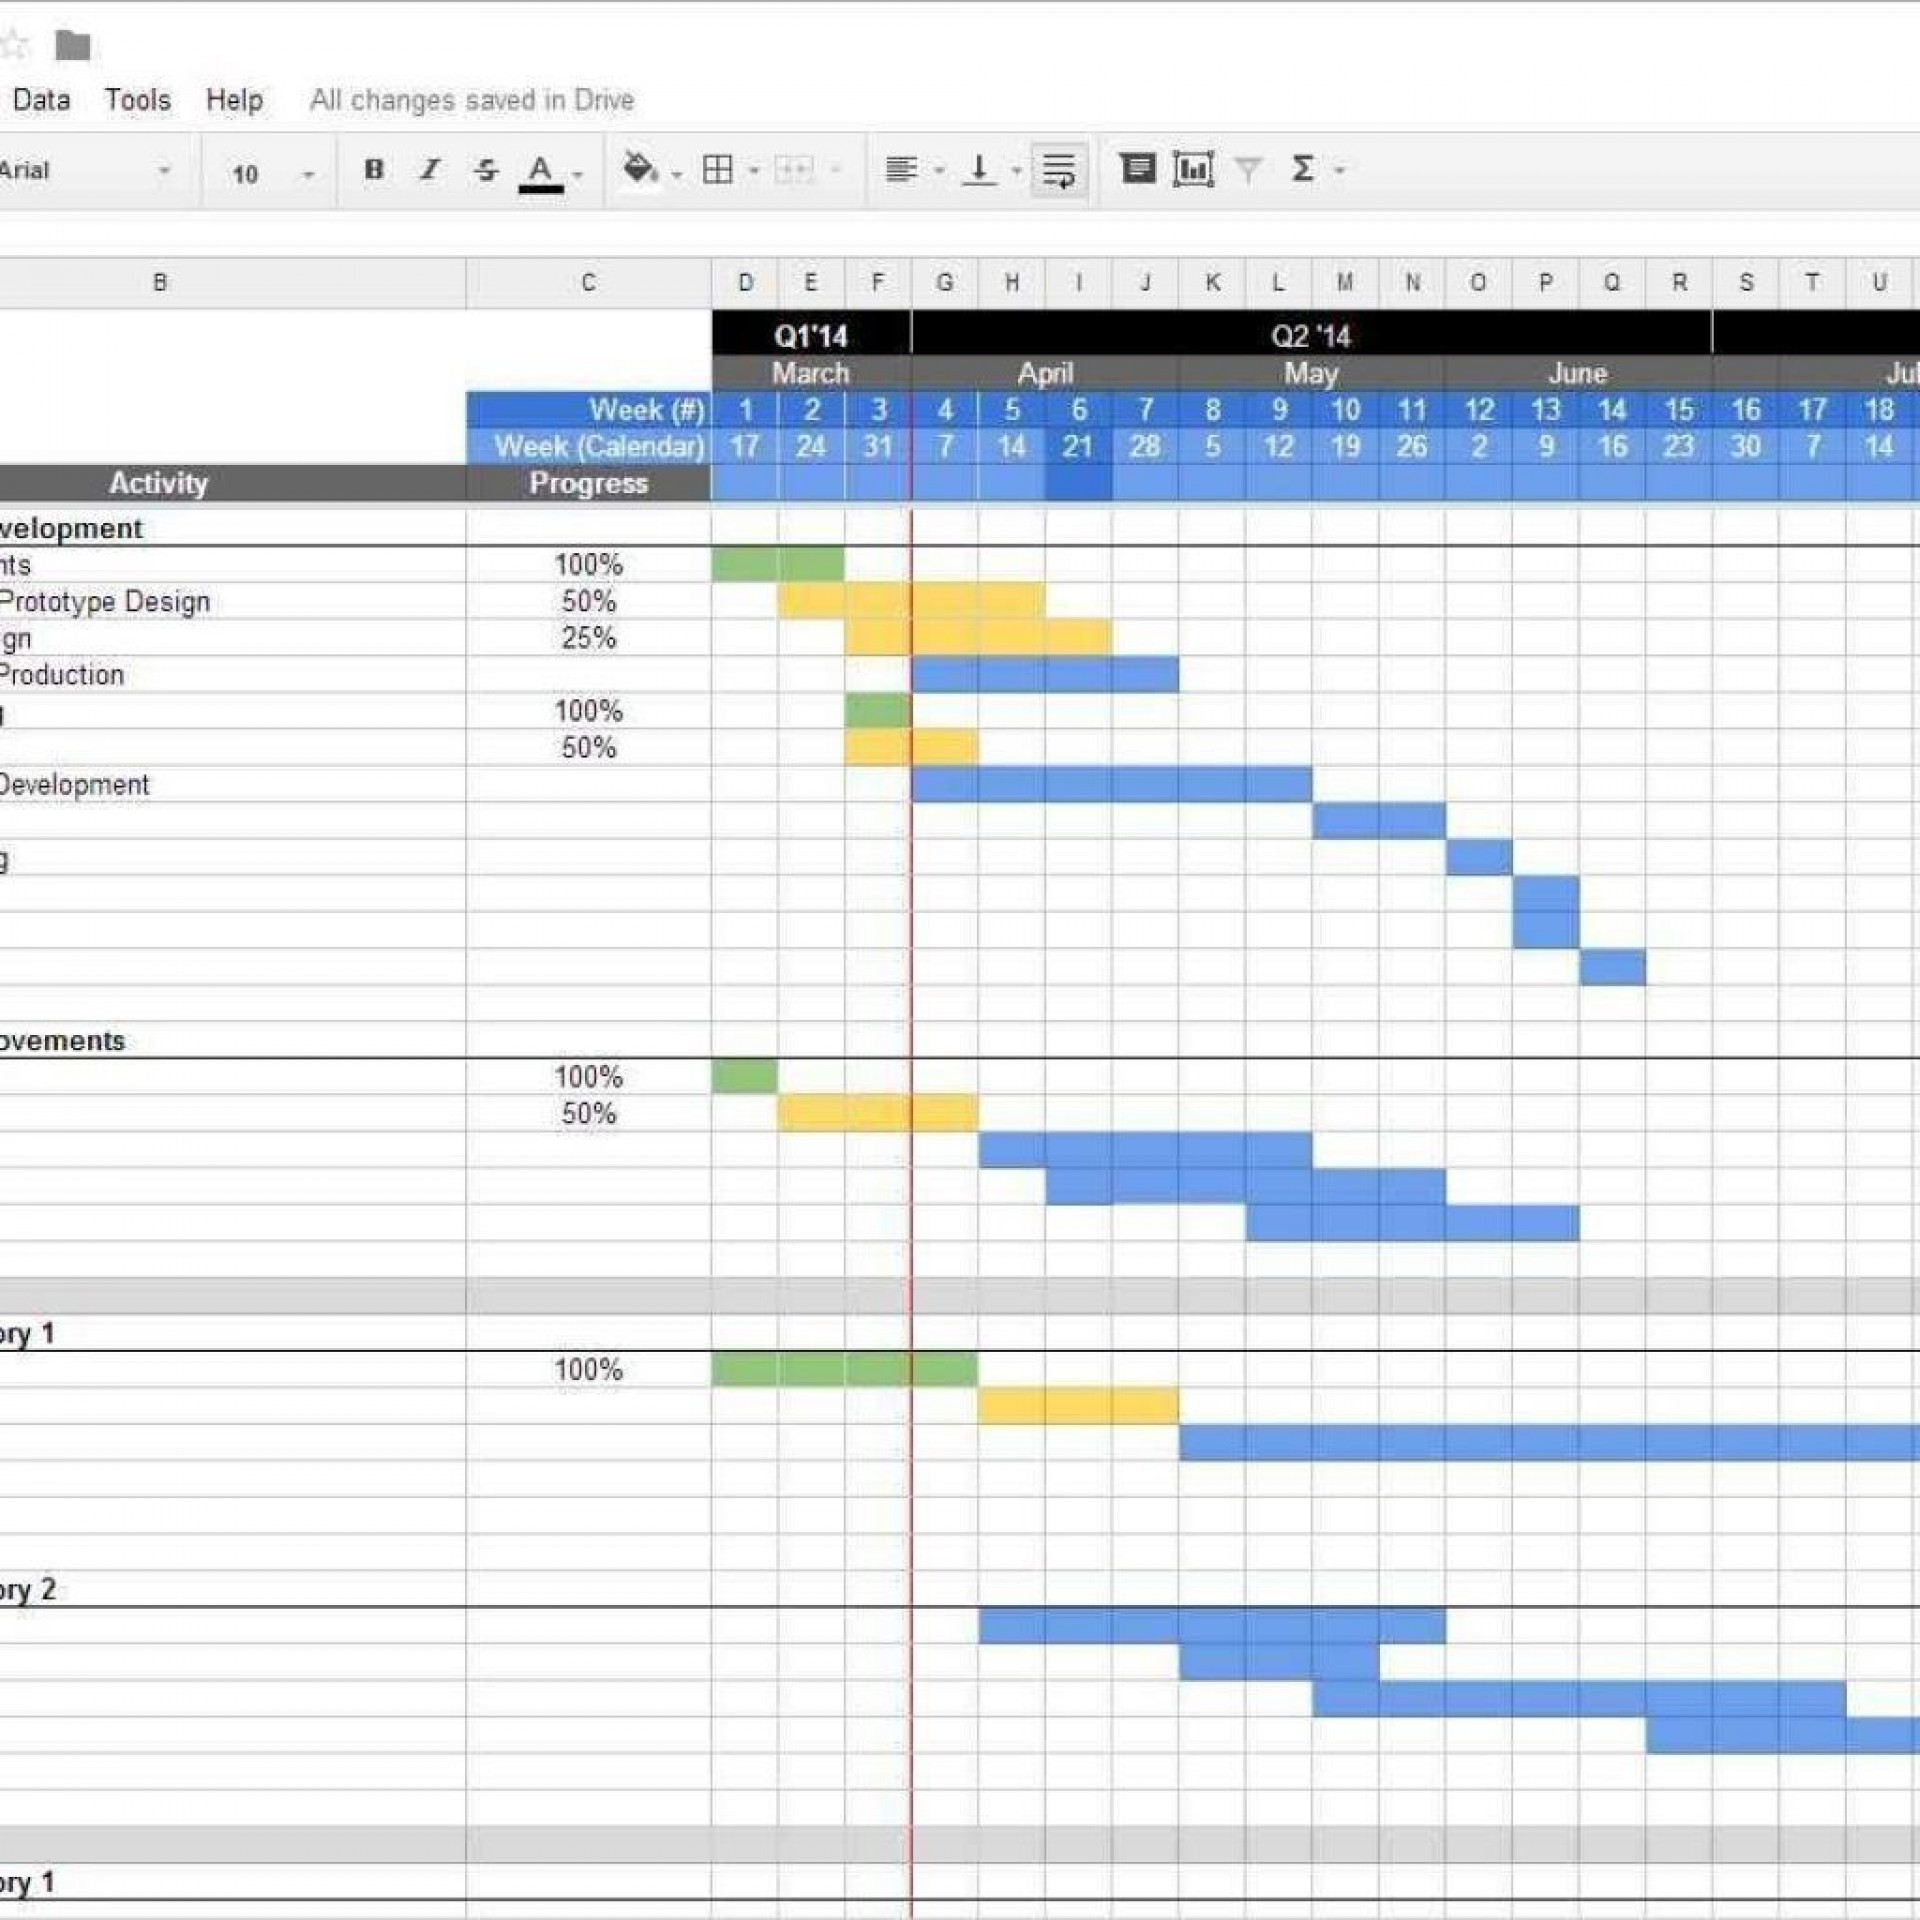 002 Magnificent Excel Project Management Template Highest Quality  With Dependencie Gantt Schedule Creation Microsoft Office1920